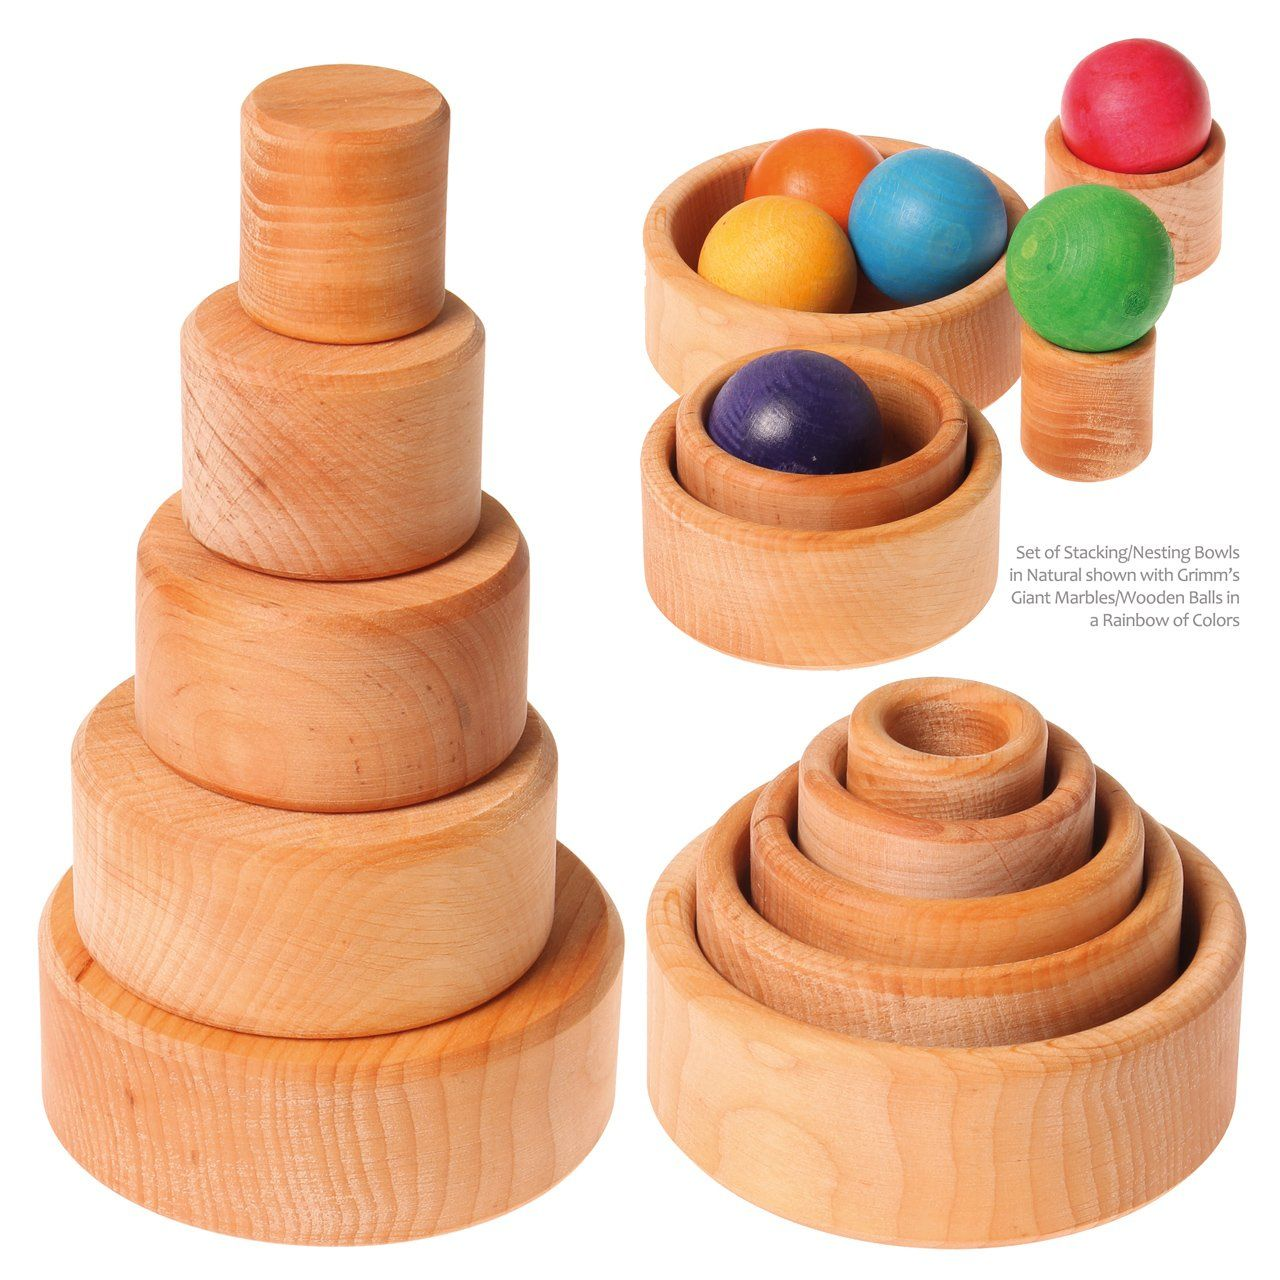 Grimms Set Of 5 Small Wooden Stacking Nesting Bowls Natural